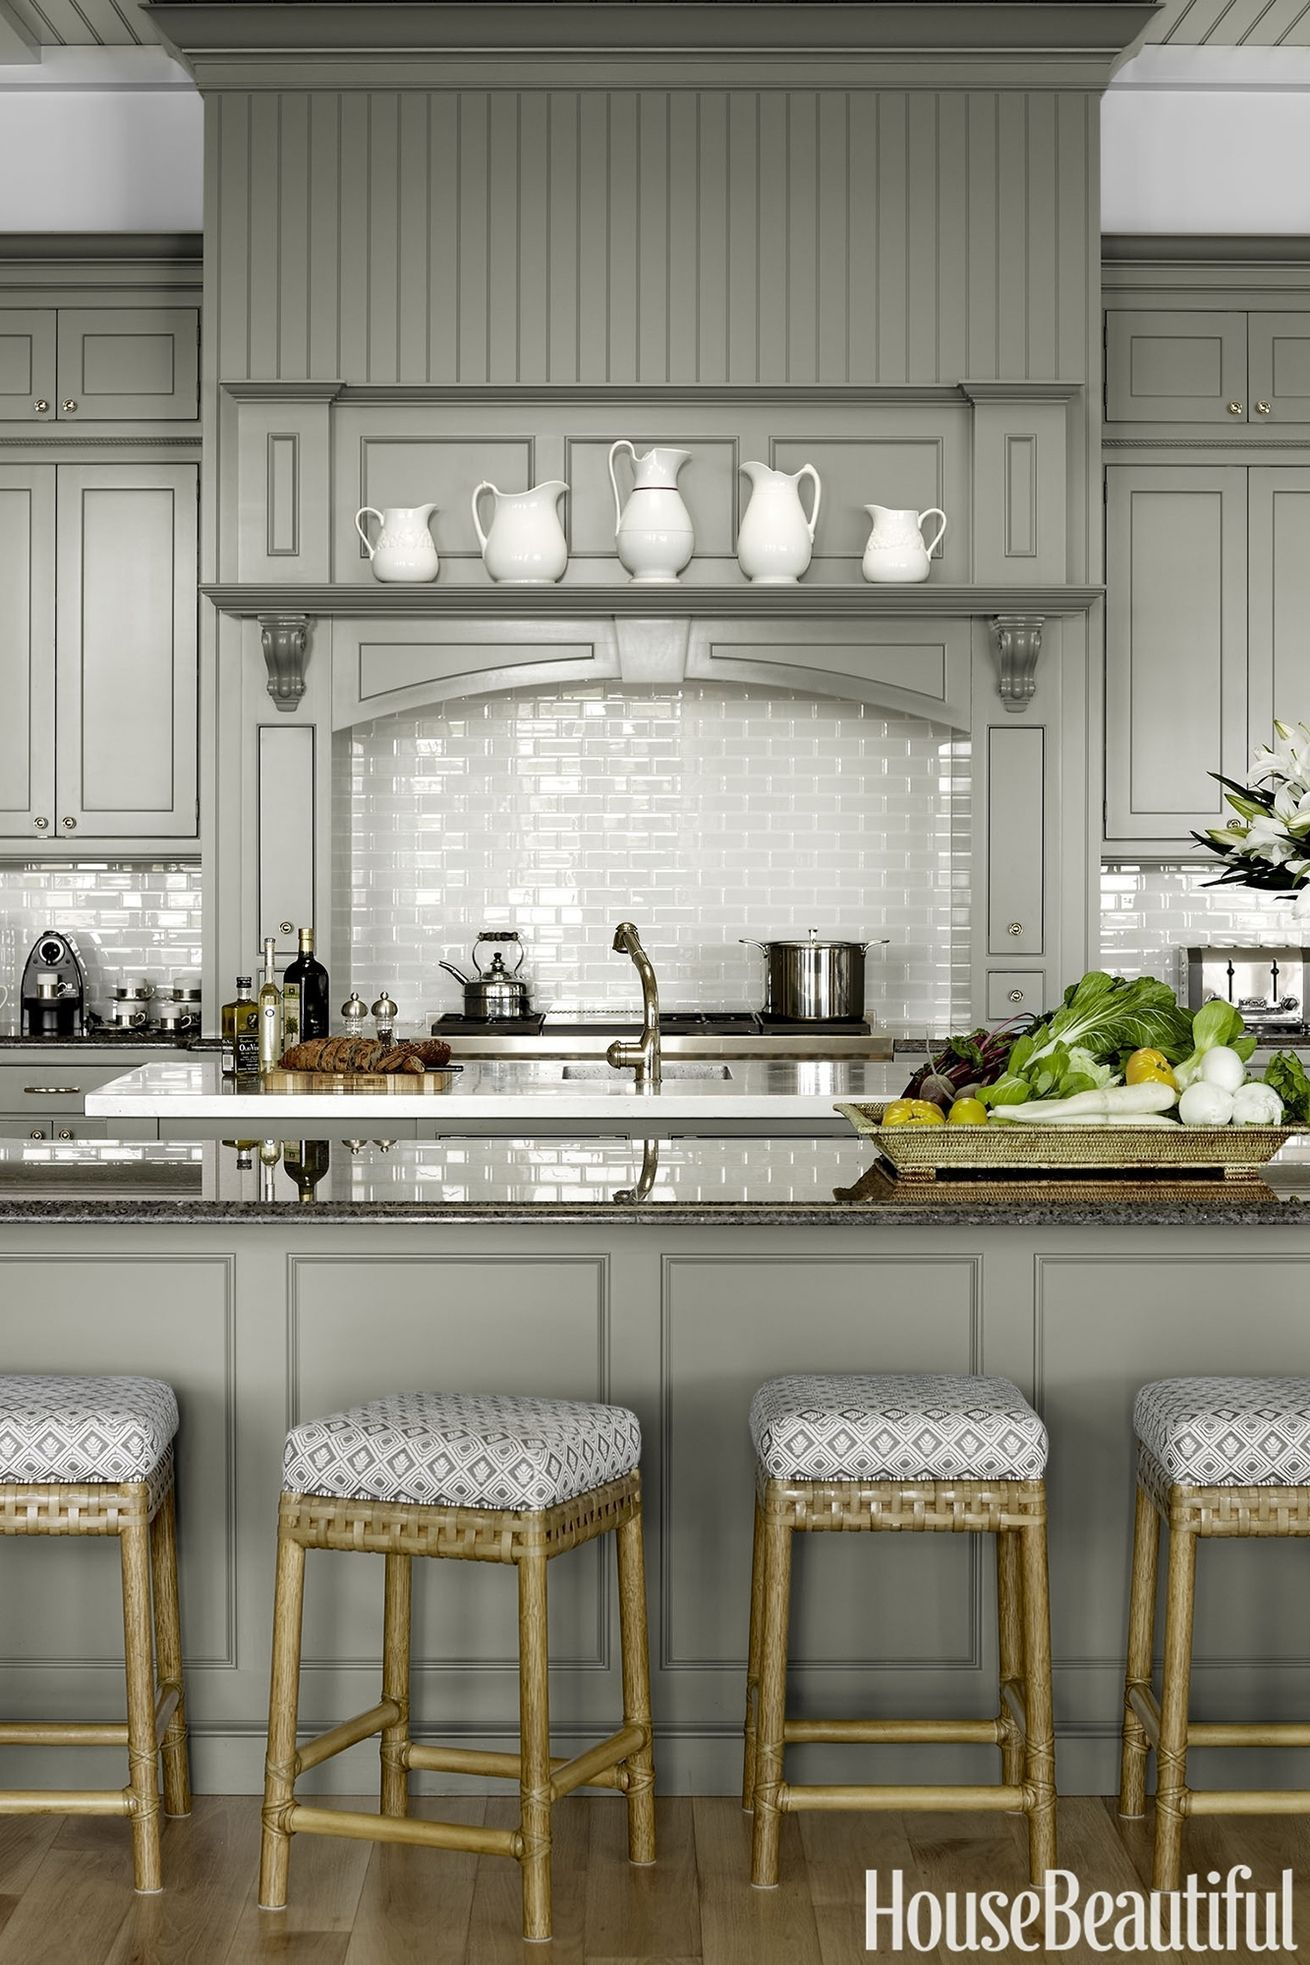 14 Best Kitchen Paint Colors - Ideas for Por Kitchen Colors Kitchen Cabinets Colors on refacing kitchen cabinets, kitchen flooring, white kitchen cabinets, furniture colors, refinishing kitchen cabinets, kitchen base cabinets, how to install kitchen cabinets, kitchen design, how to paint kitchen cabinets, kitchen backsplash, cottage kitchen colors, kitchen color combinations, kitchen ideas, living room colors, kitchen pantry cabinet, rustic kitchen cabinets, kitchen color selector, black kitchen cabinets, unfinished kitchen cabinets, kitchen pantry cabinets, staining kitchen cabinets, green kitchen colors, ceiling colors, choosing kitchen cabinets, kitchen color palettes, resurfacing kitchen cabinets, kitchen cabinets product, kitchen remodel, kitchen wall cabinets, ideas for painting kitchen cabinets, kitchen island, kitchen cabinet design ideas, painting kitchen cabinets, kitchen cabinet design software, glazing kitchen cabinets, kitchen wall colors, wood colors,